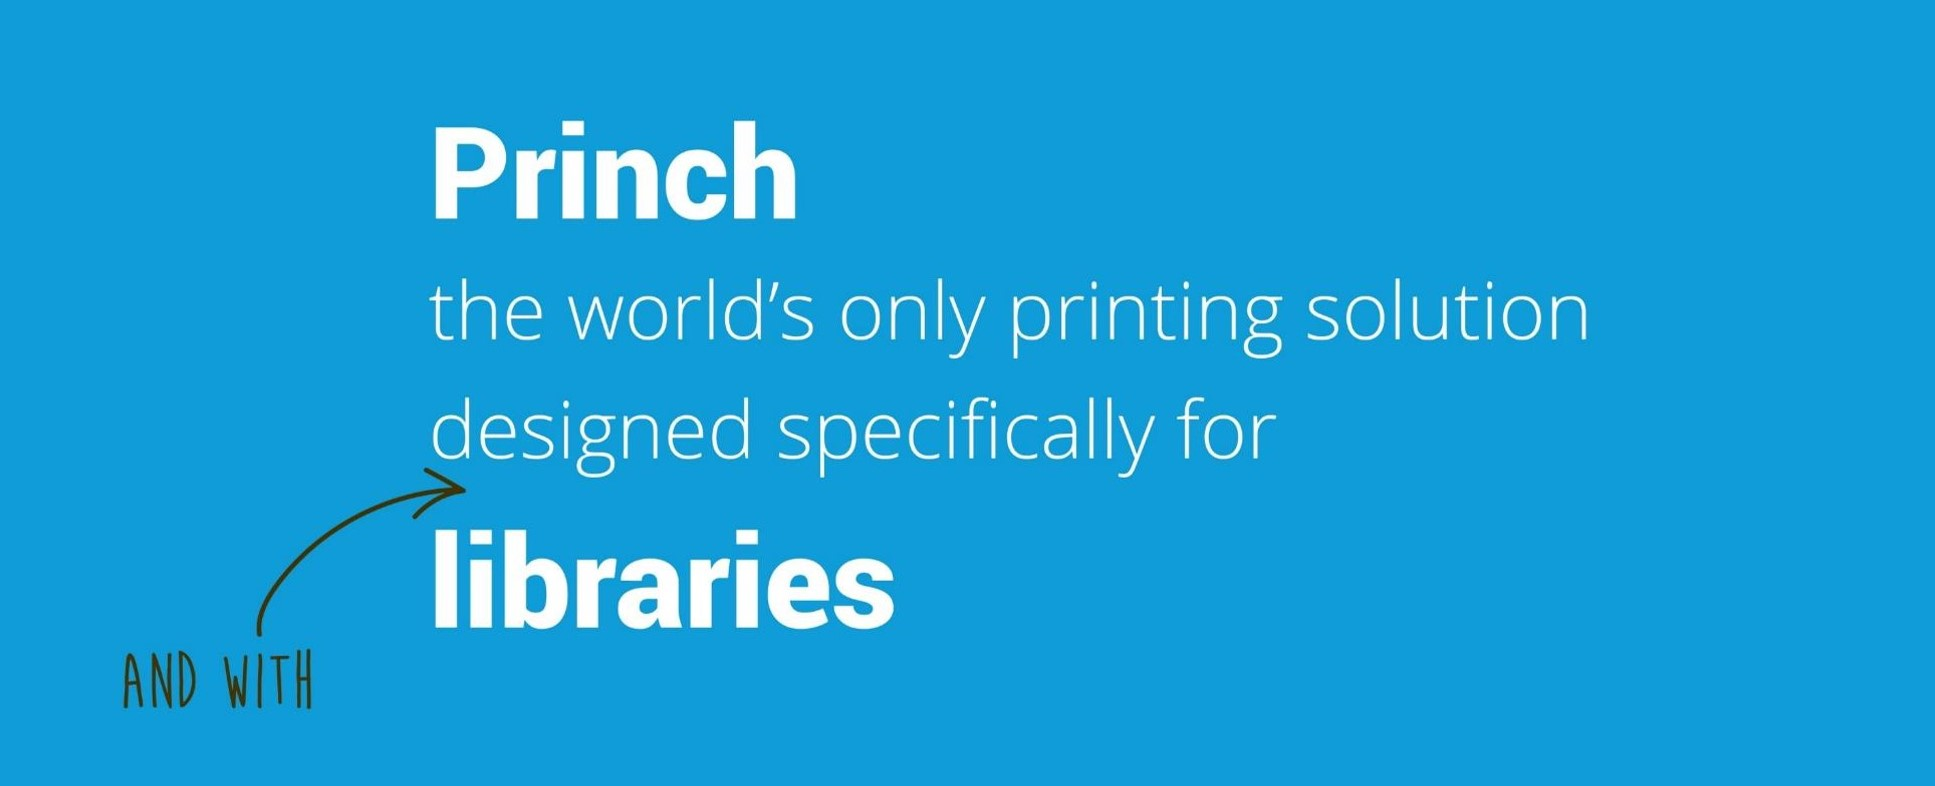 princh for with libraries banner